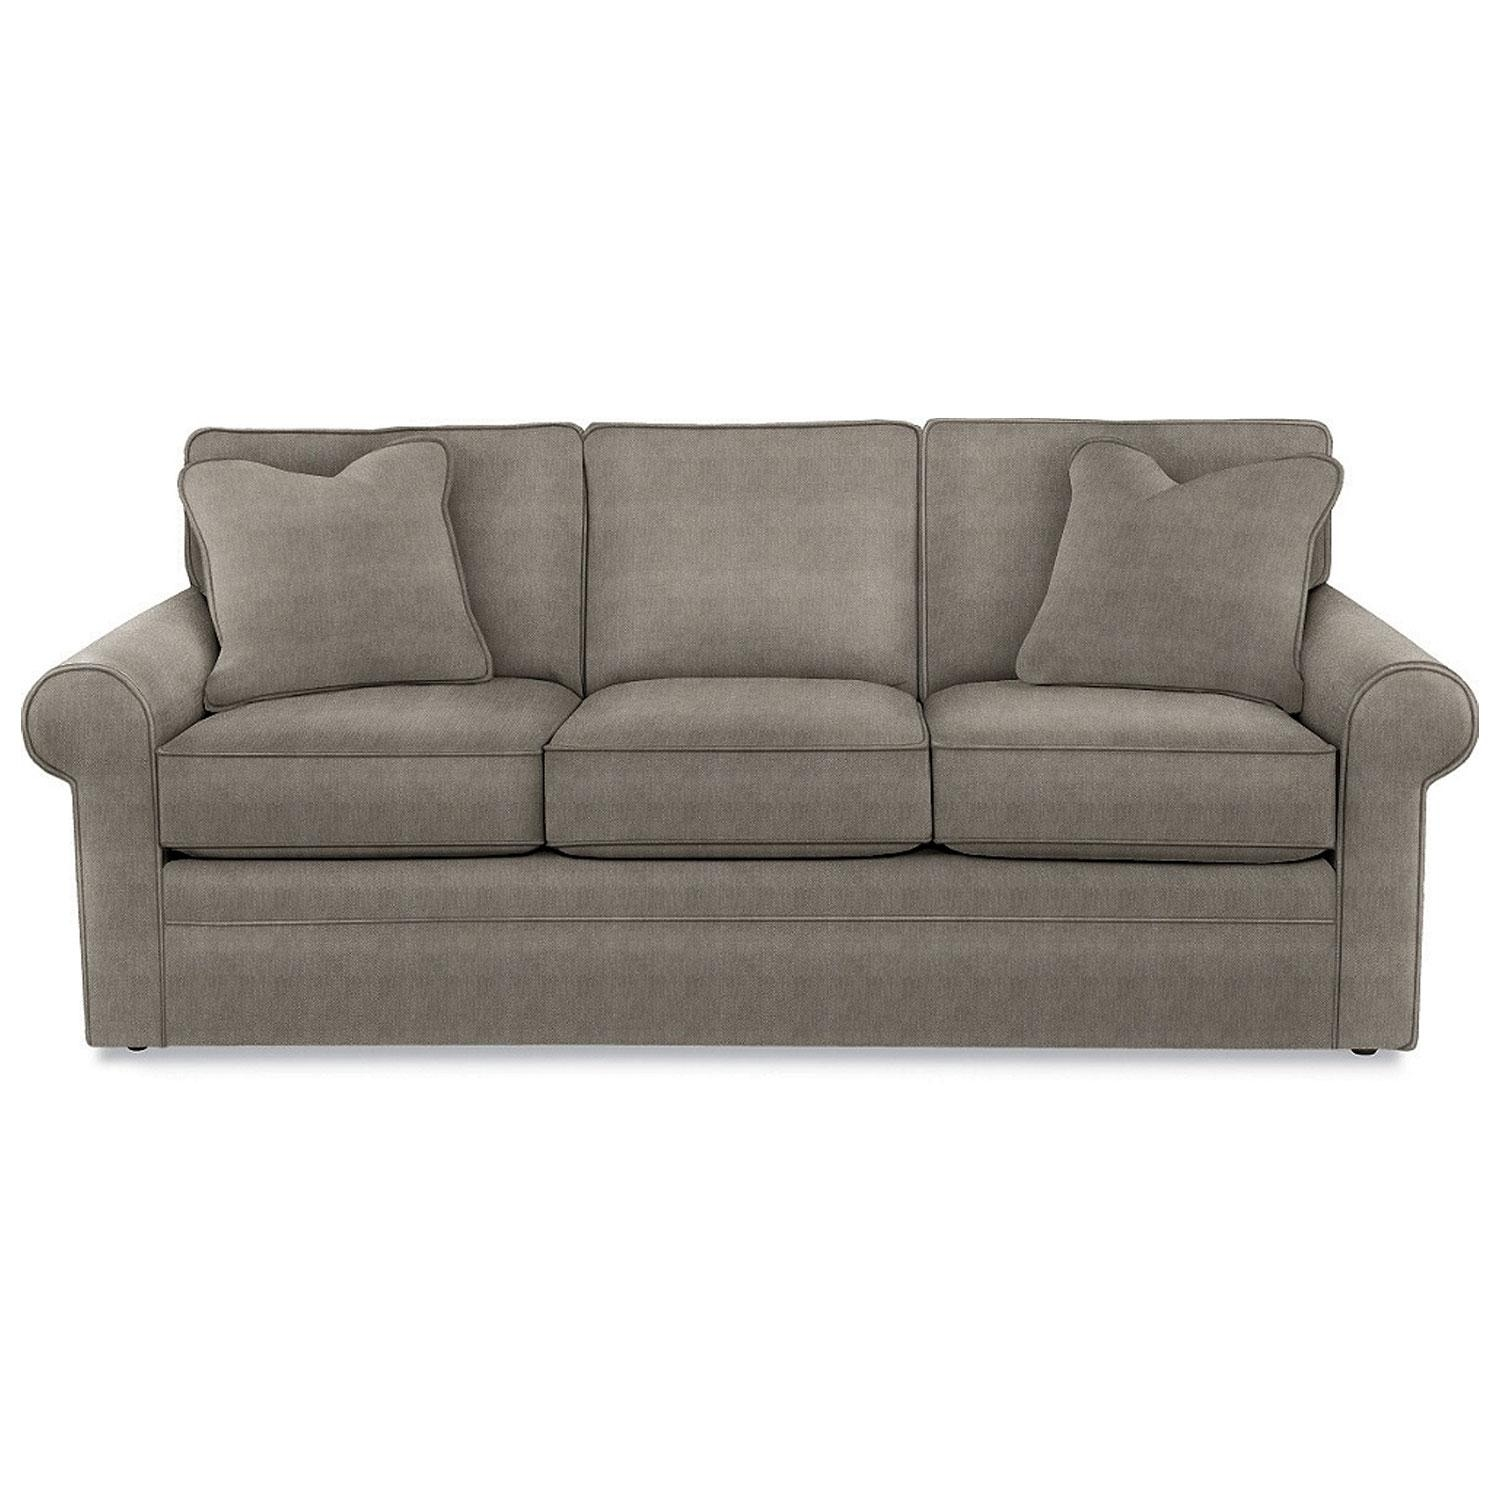 Lazboy 610 494 Collins Premier Sofa | Hope Home Furnishings And Throughout Collins Sofas (Image 15 of 20)